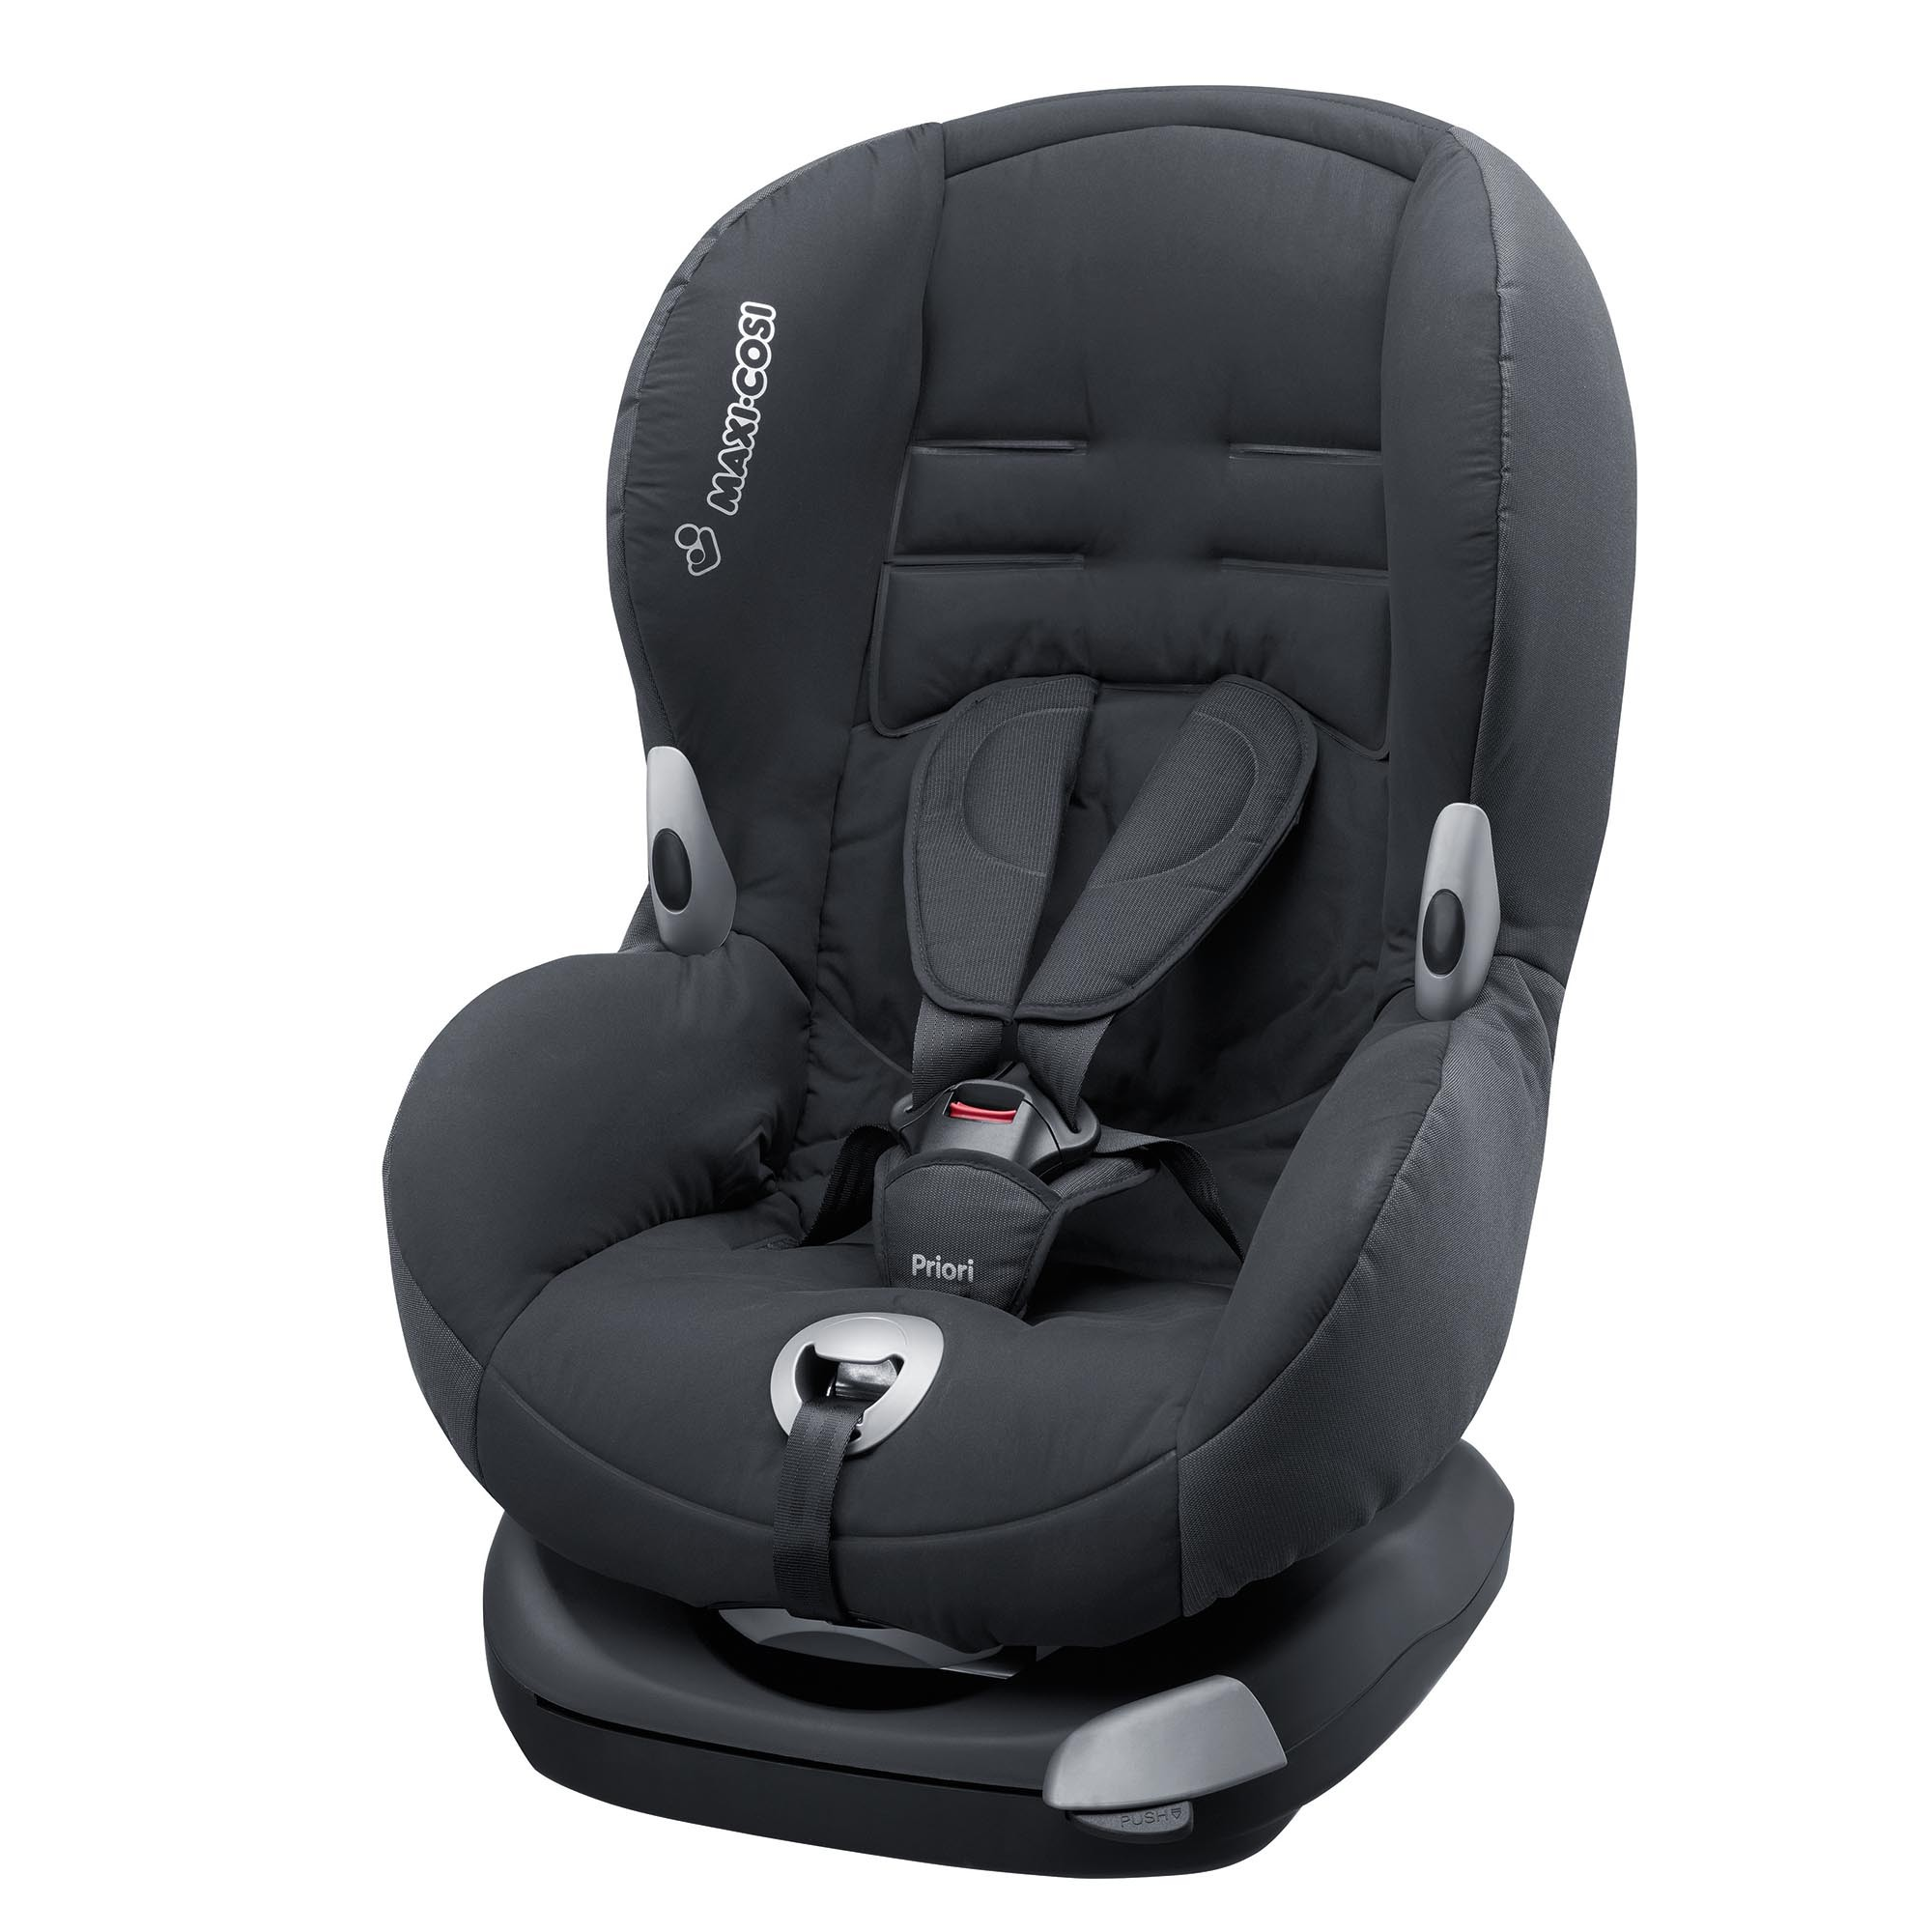 car seats under 100 good egg car safety. Black Bedroom Furniture Sets. Home Design Ideas